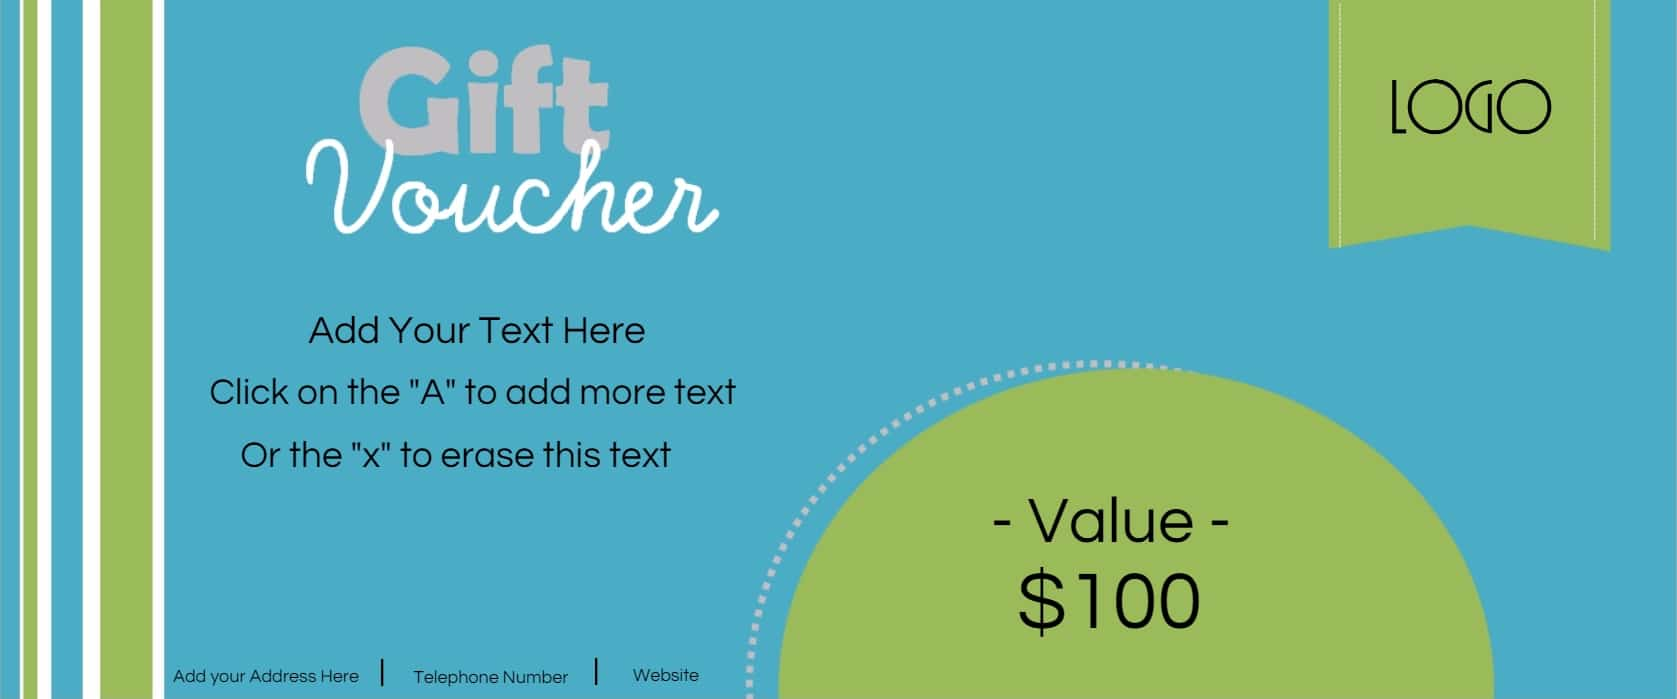 Blue And Green Gift Voucher With Customisable Text.  Make Voucher